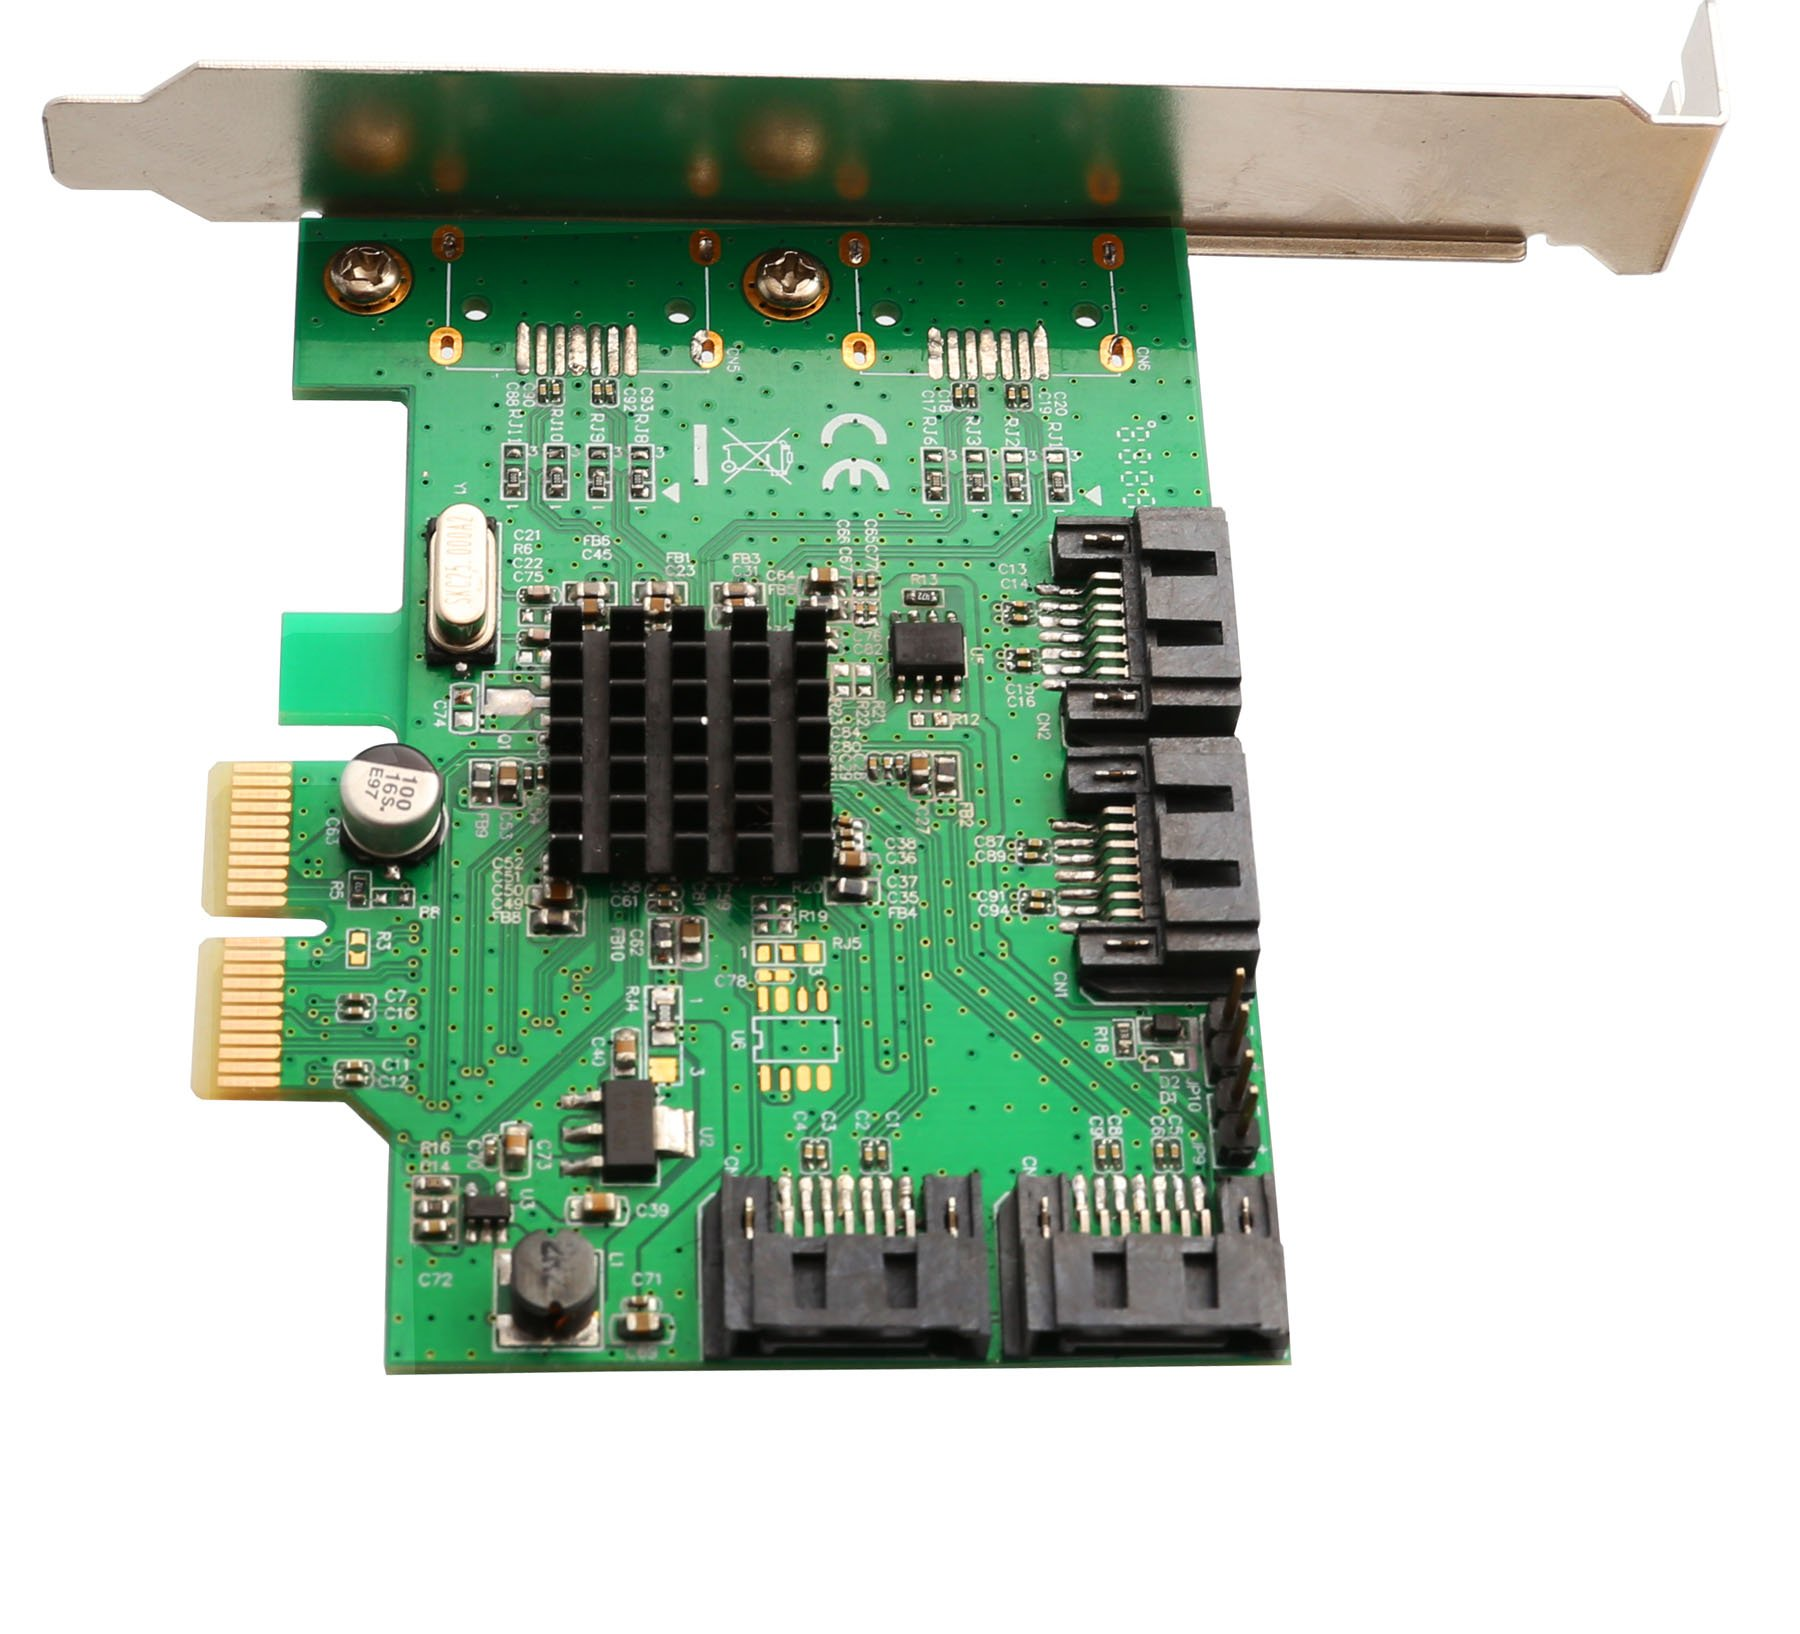 I/O Crest 4 Port SATA III PCI-e 2.0 x2 HyperDuo RAID Hard Drive Controller Card Marvell 9230 Chipset by IO Crest (Image #3)